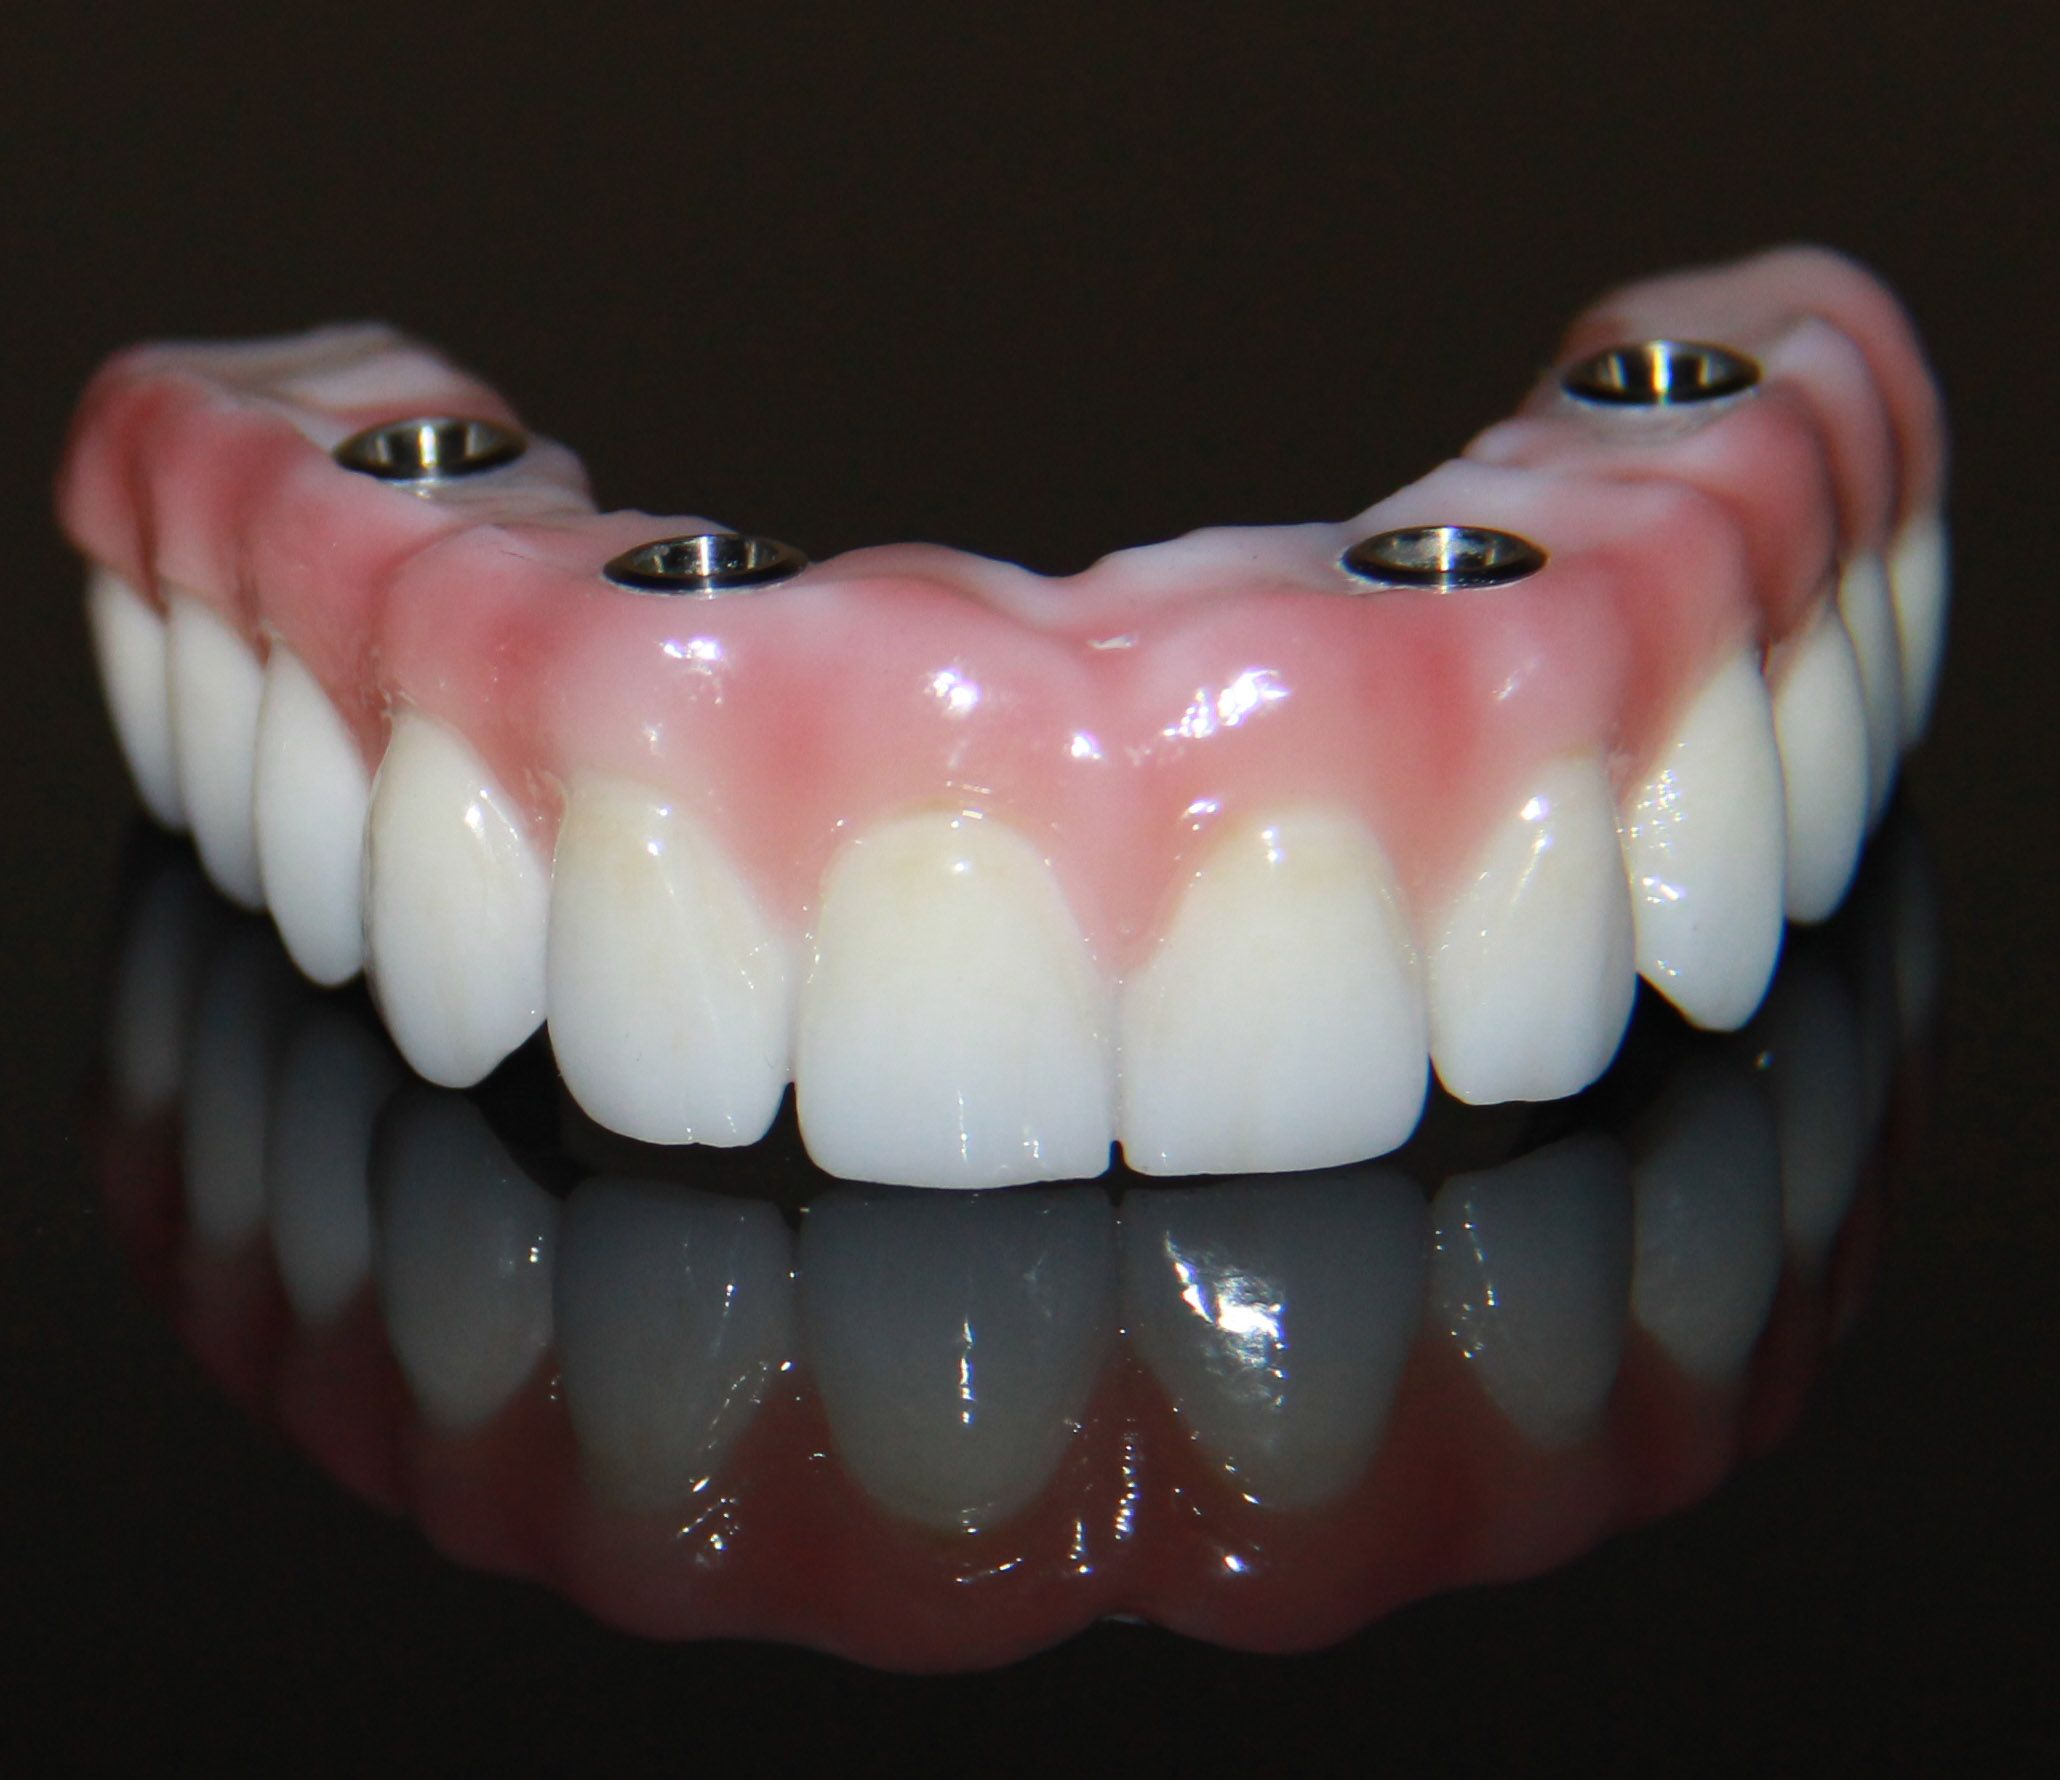 ZIRCONIA1 Denture implants, Dental implants, Tooth